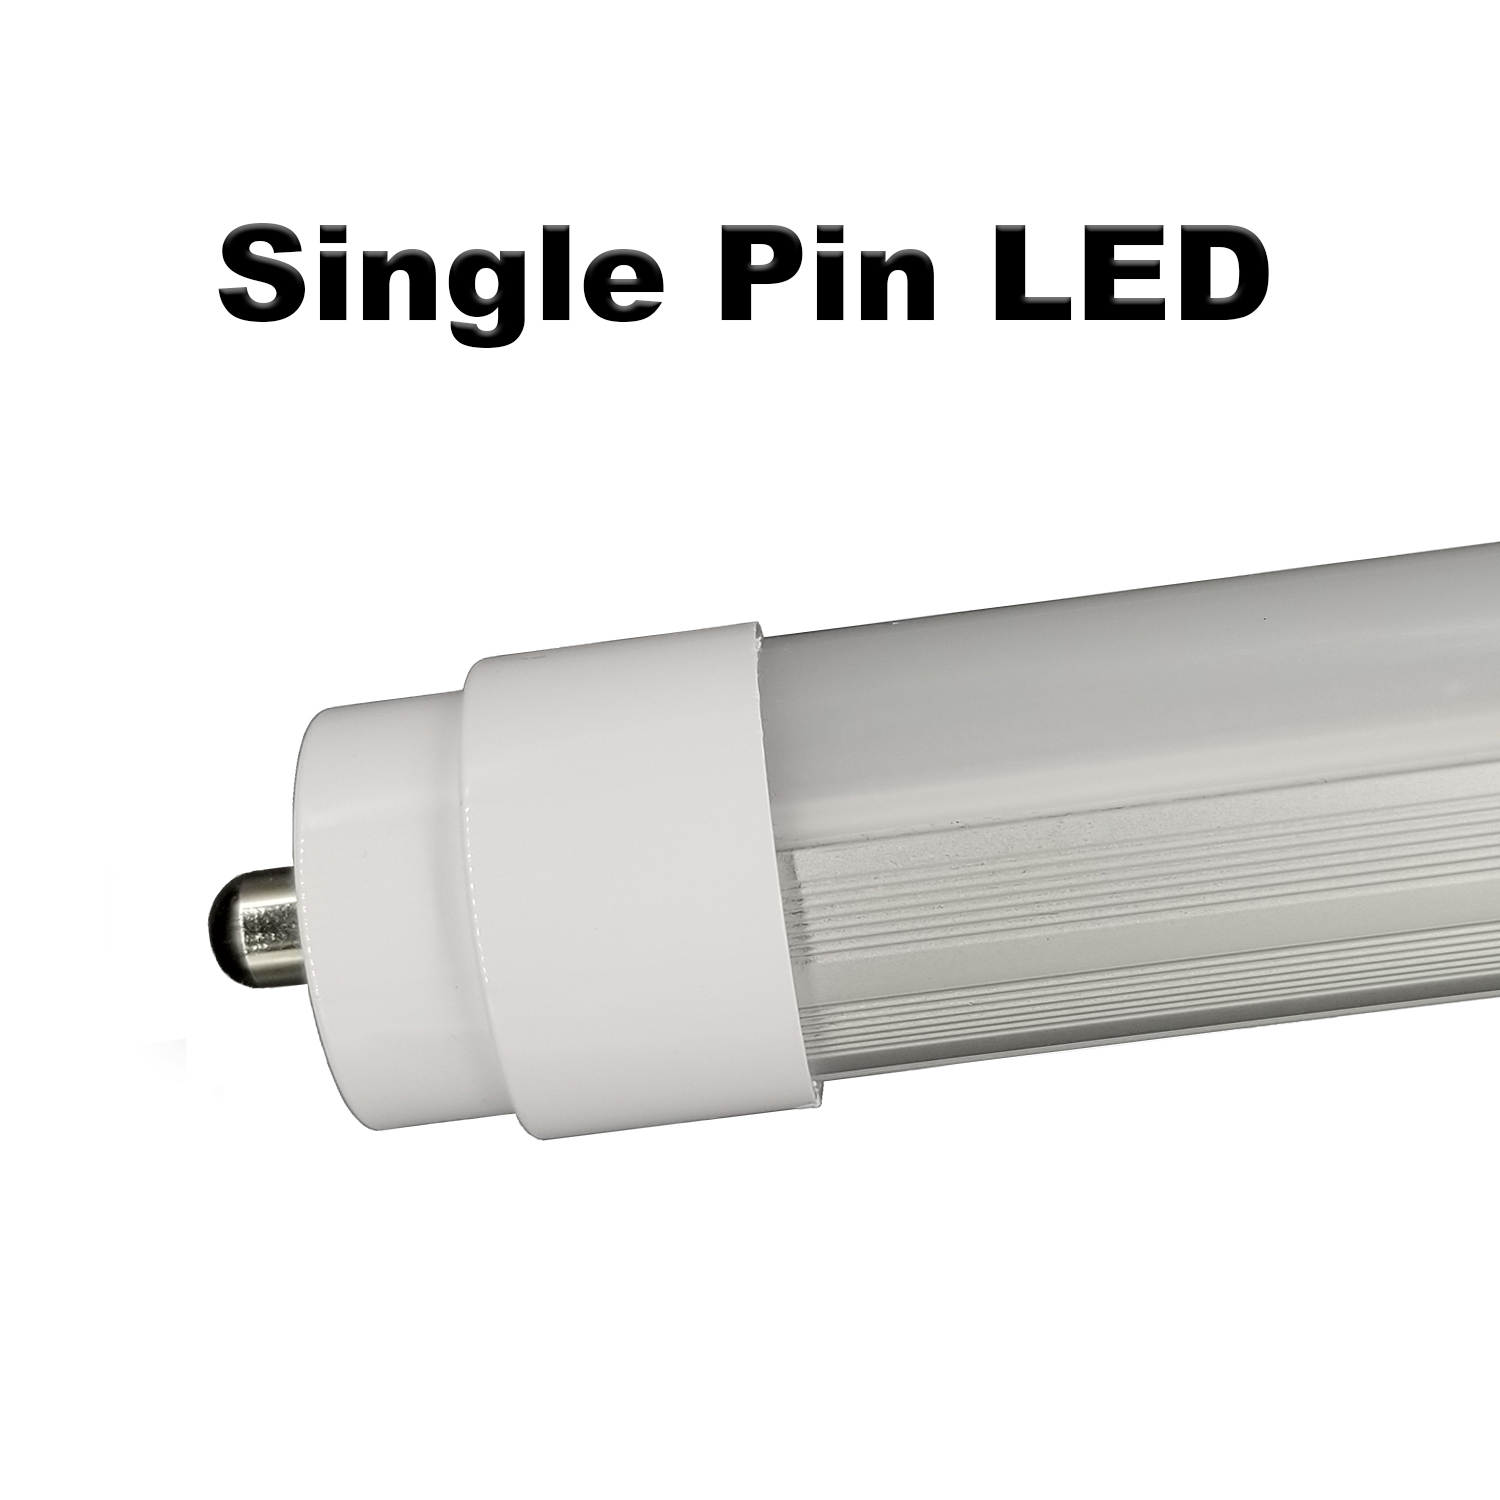 Plug & play single pin 6ft T12 LED replaces 55 watt F72T12 w/o rewiring.